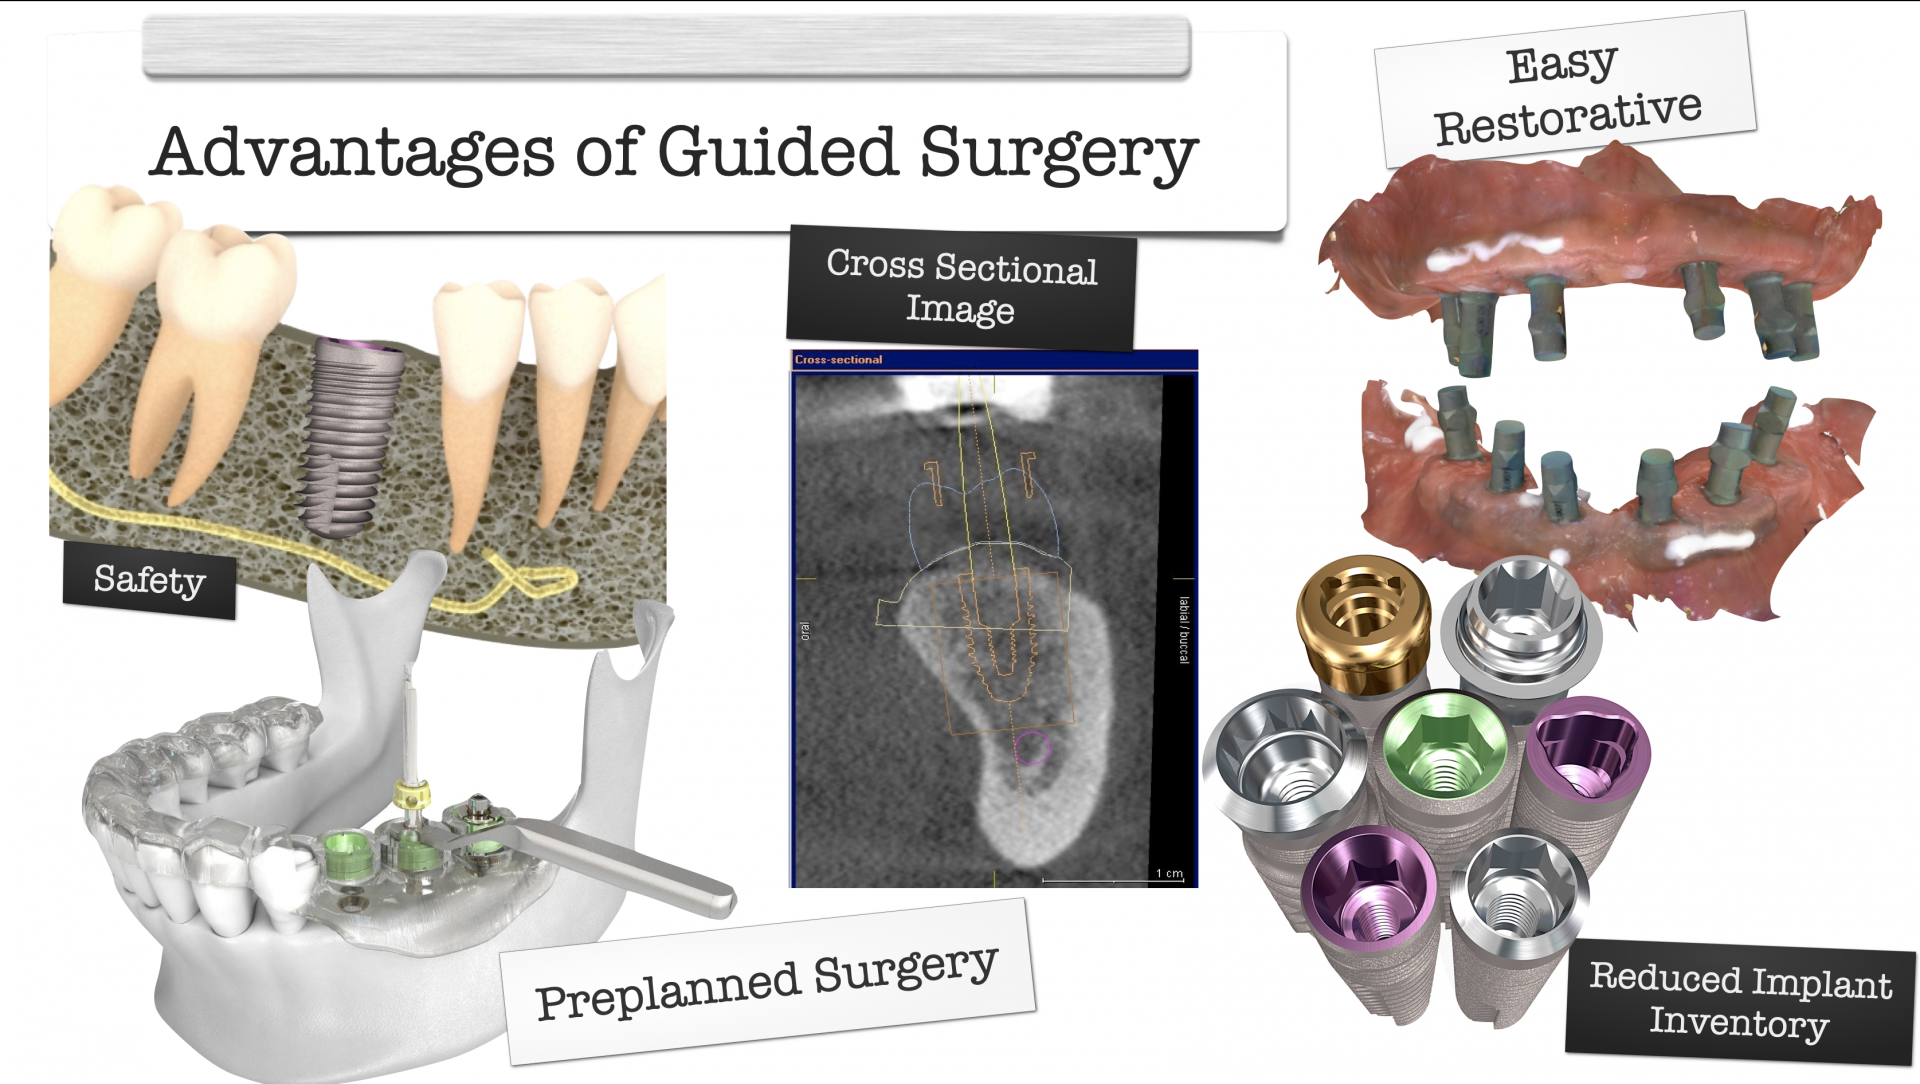 Make your own Surgical Guides<span>I'll show you how to design and print surgical guides for about $25 each using Blue Sky Plan.</span>